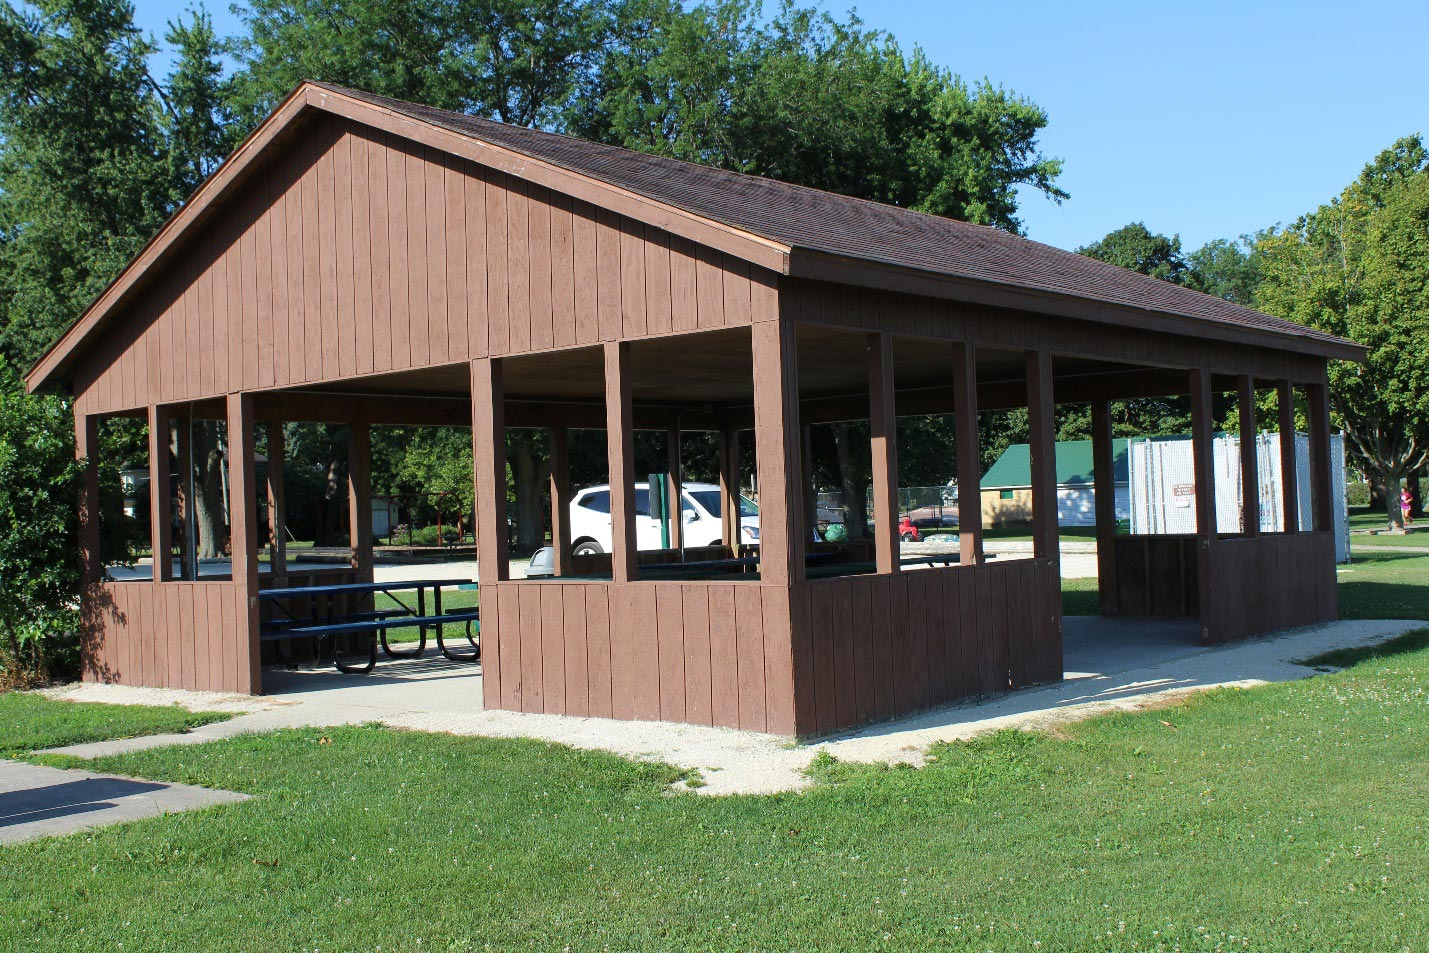 Chamberlain Park Picnic Shelter No. 1 (with-electric)